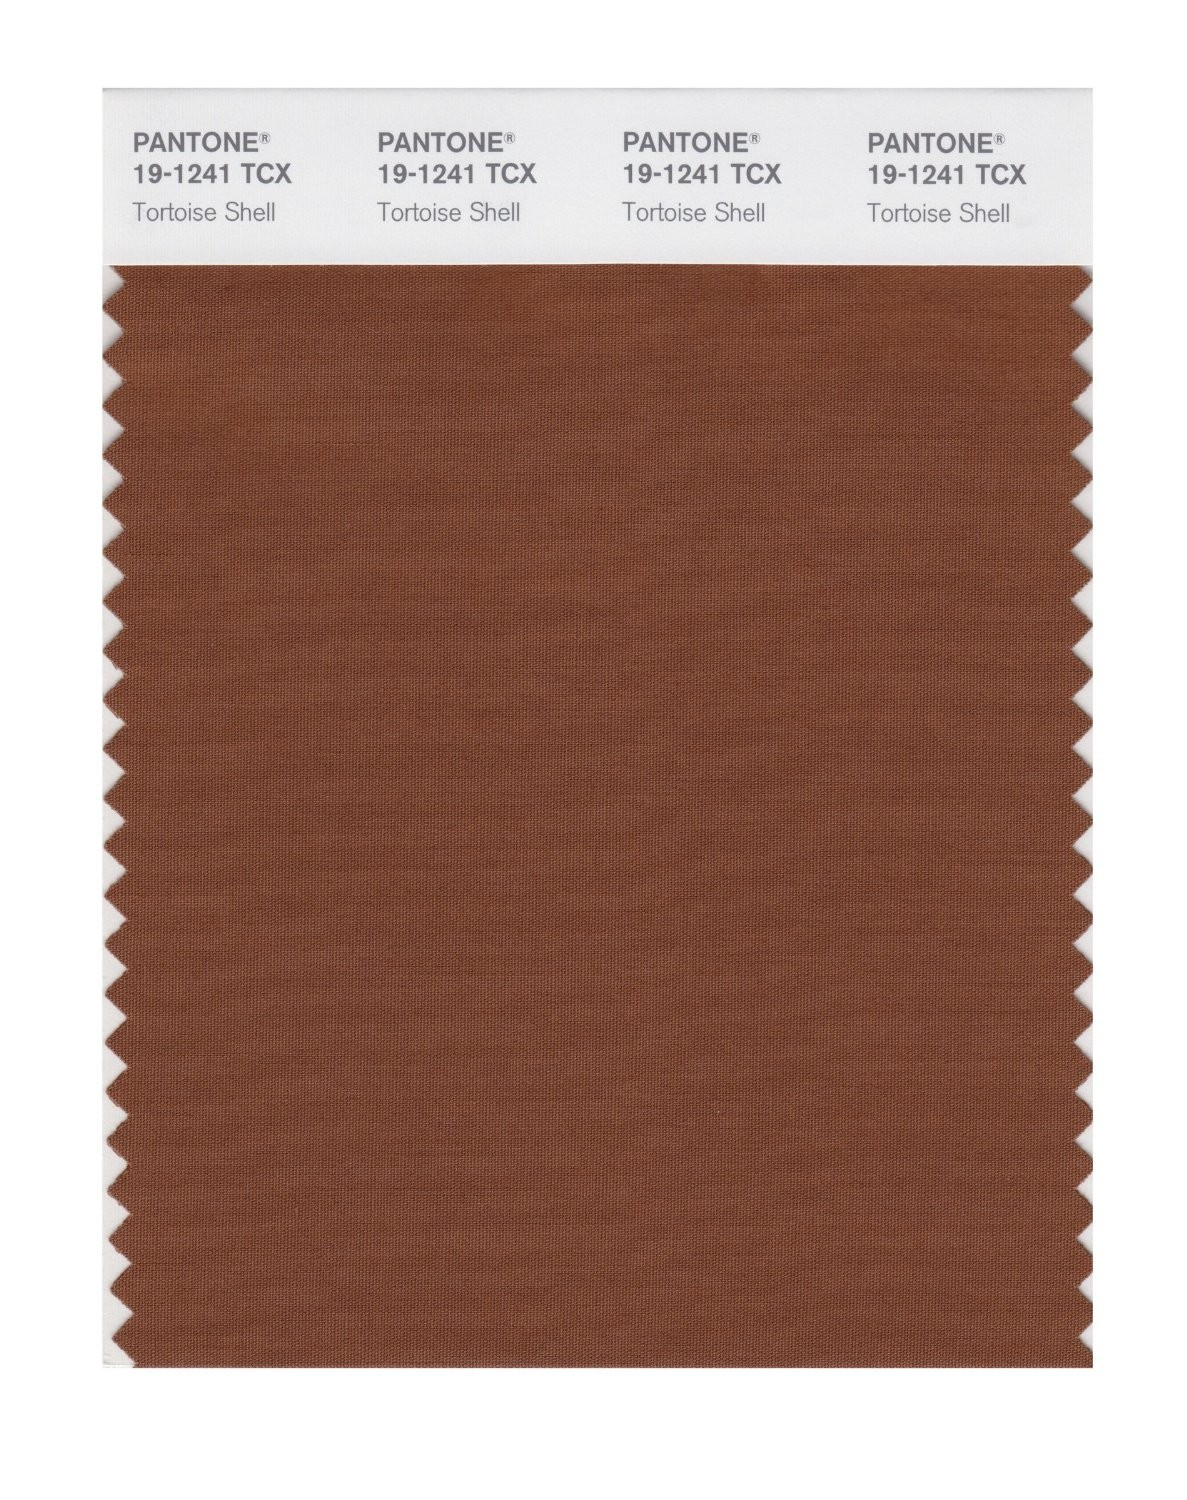 Pantone 19-1241 TCX Swatch Card Tortoise Shell